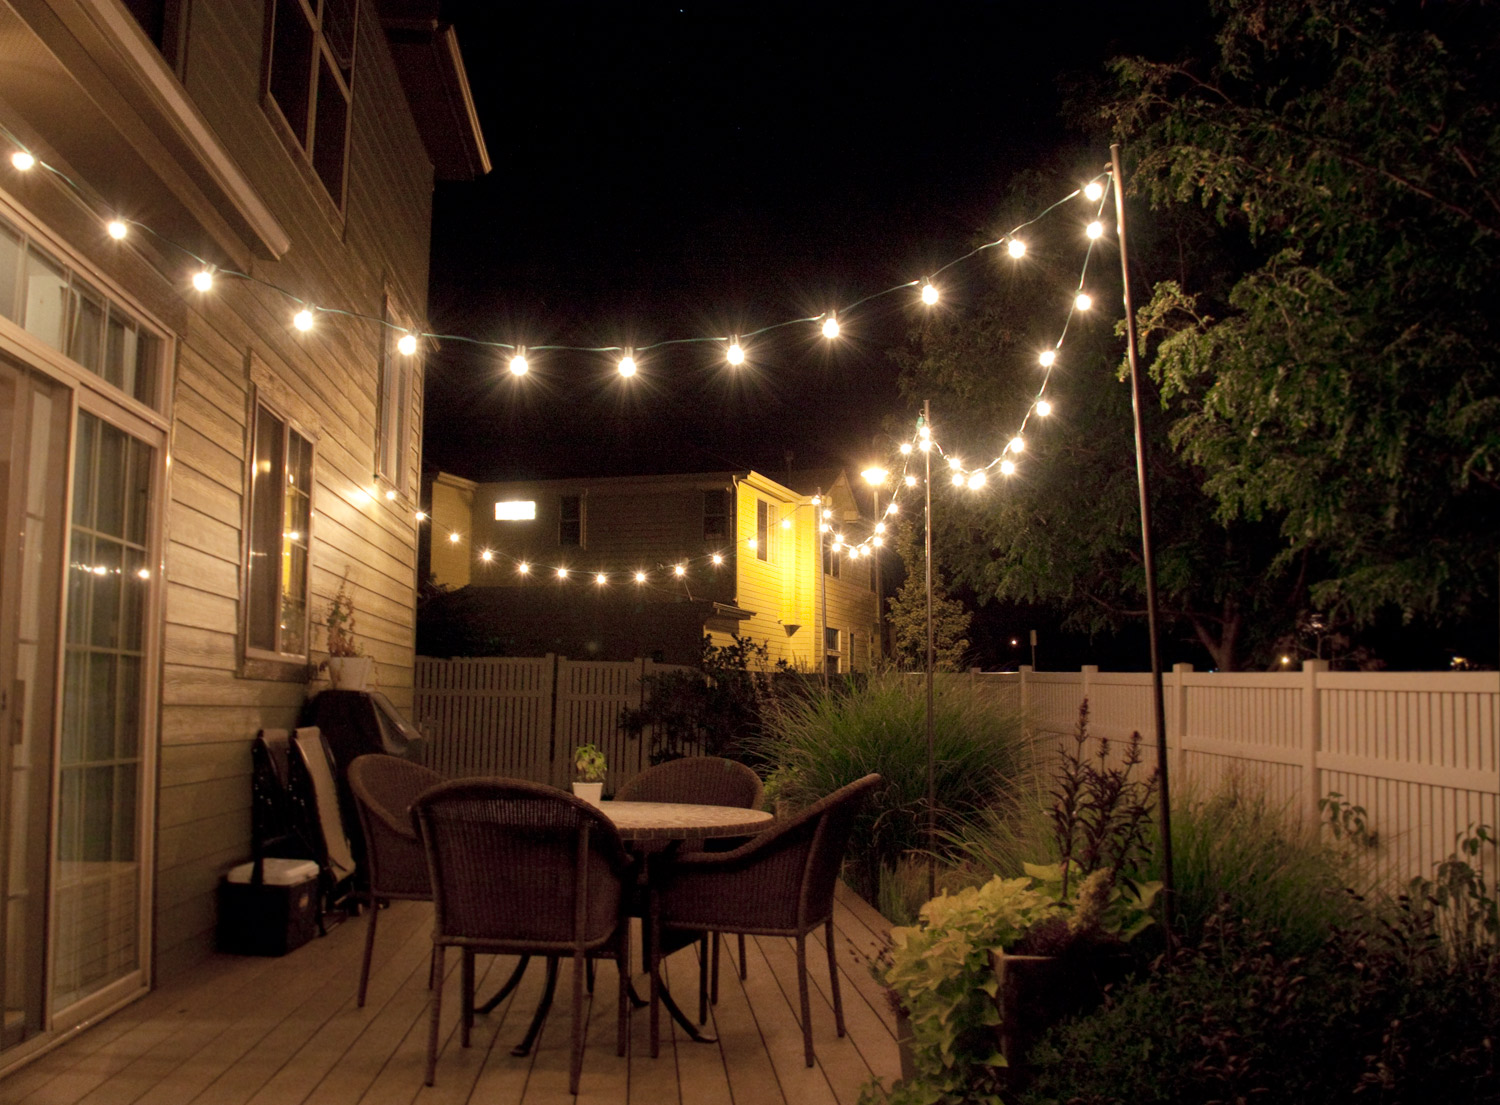 New 17+ outdoor lighting ideas for the garden - scattered thoughts of a crafty dedhekj